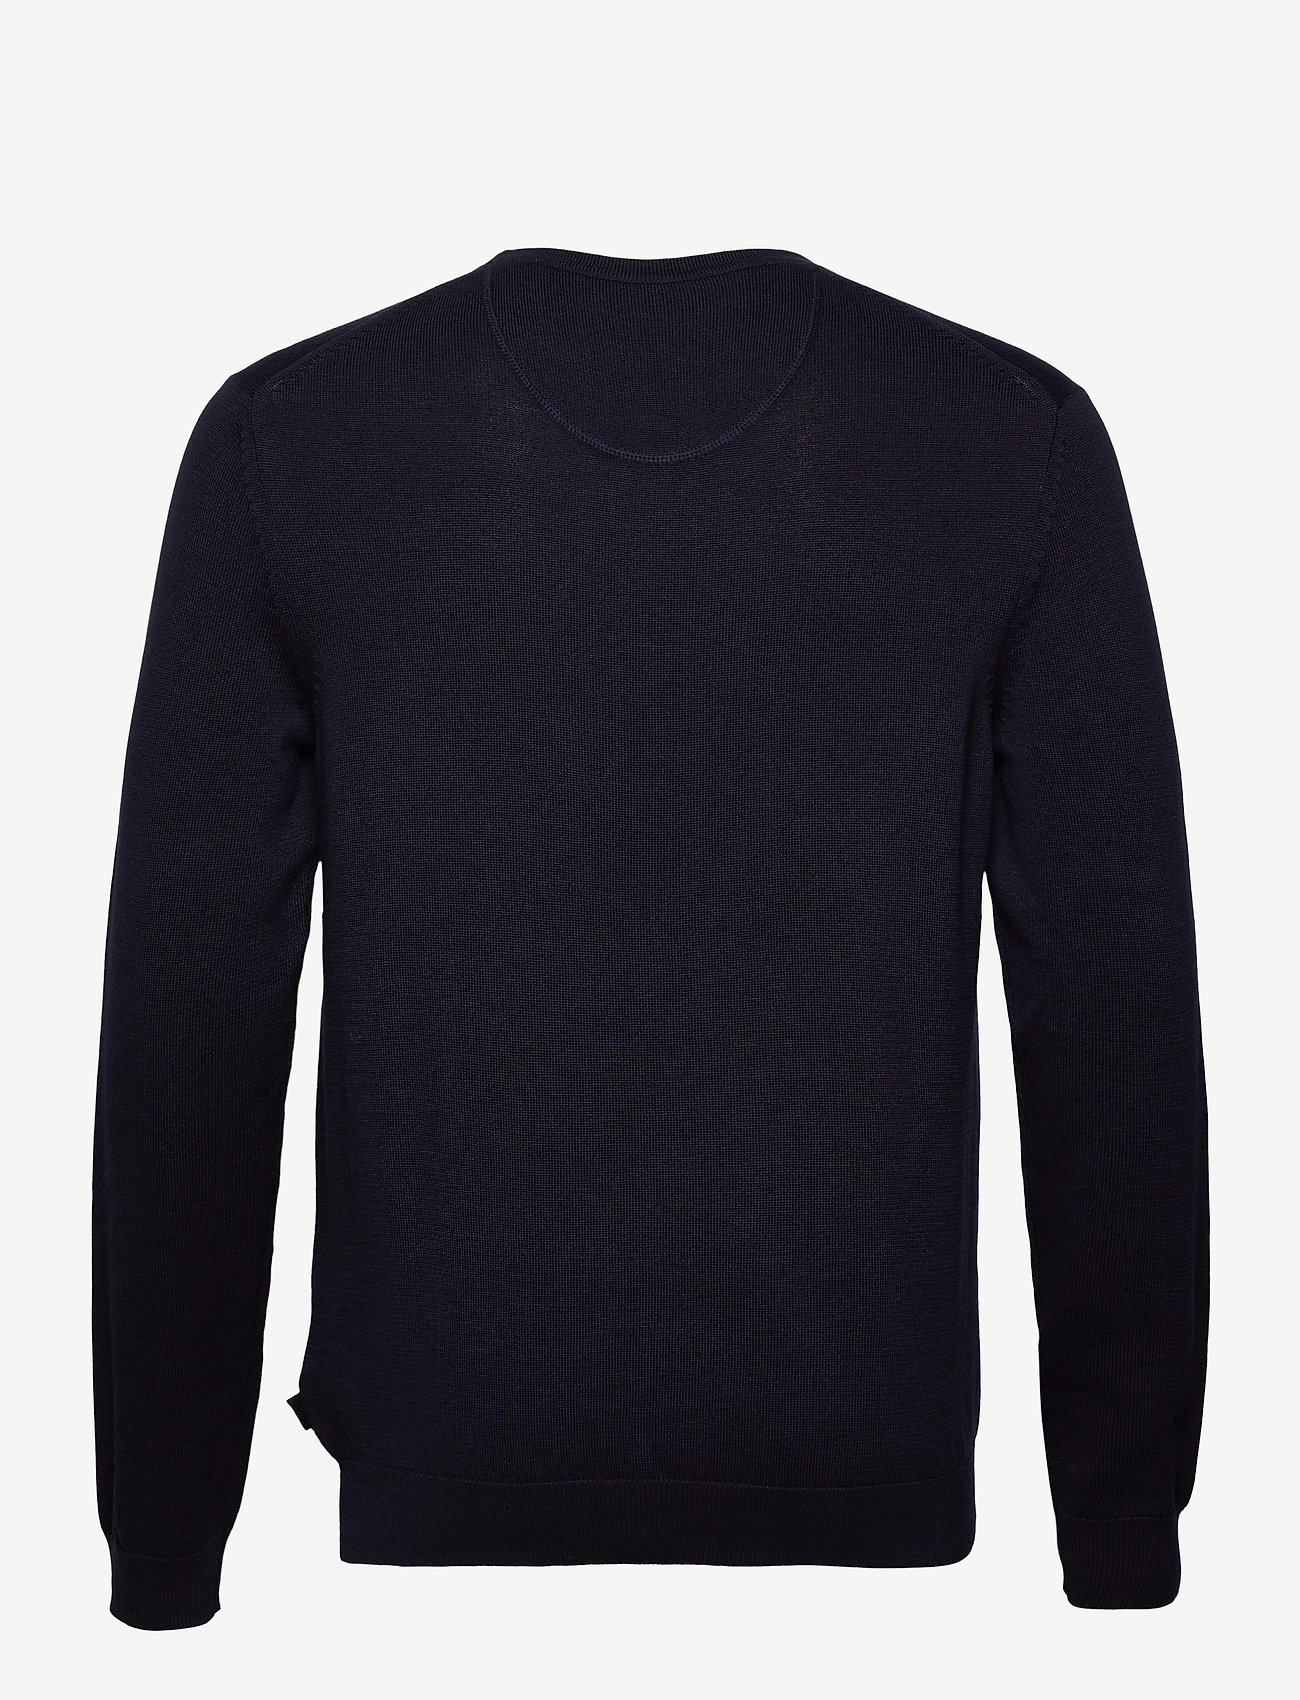 Esprit Casual - Sweaters - tricots basiques - navy - 1